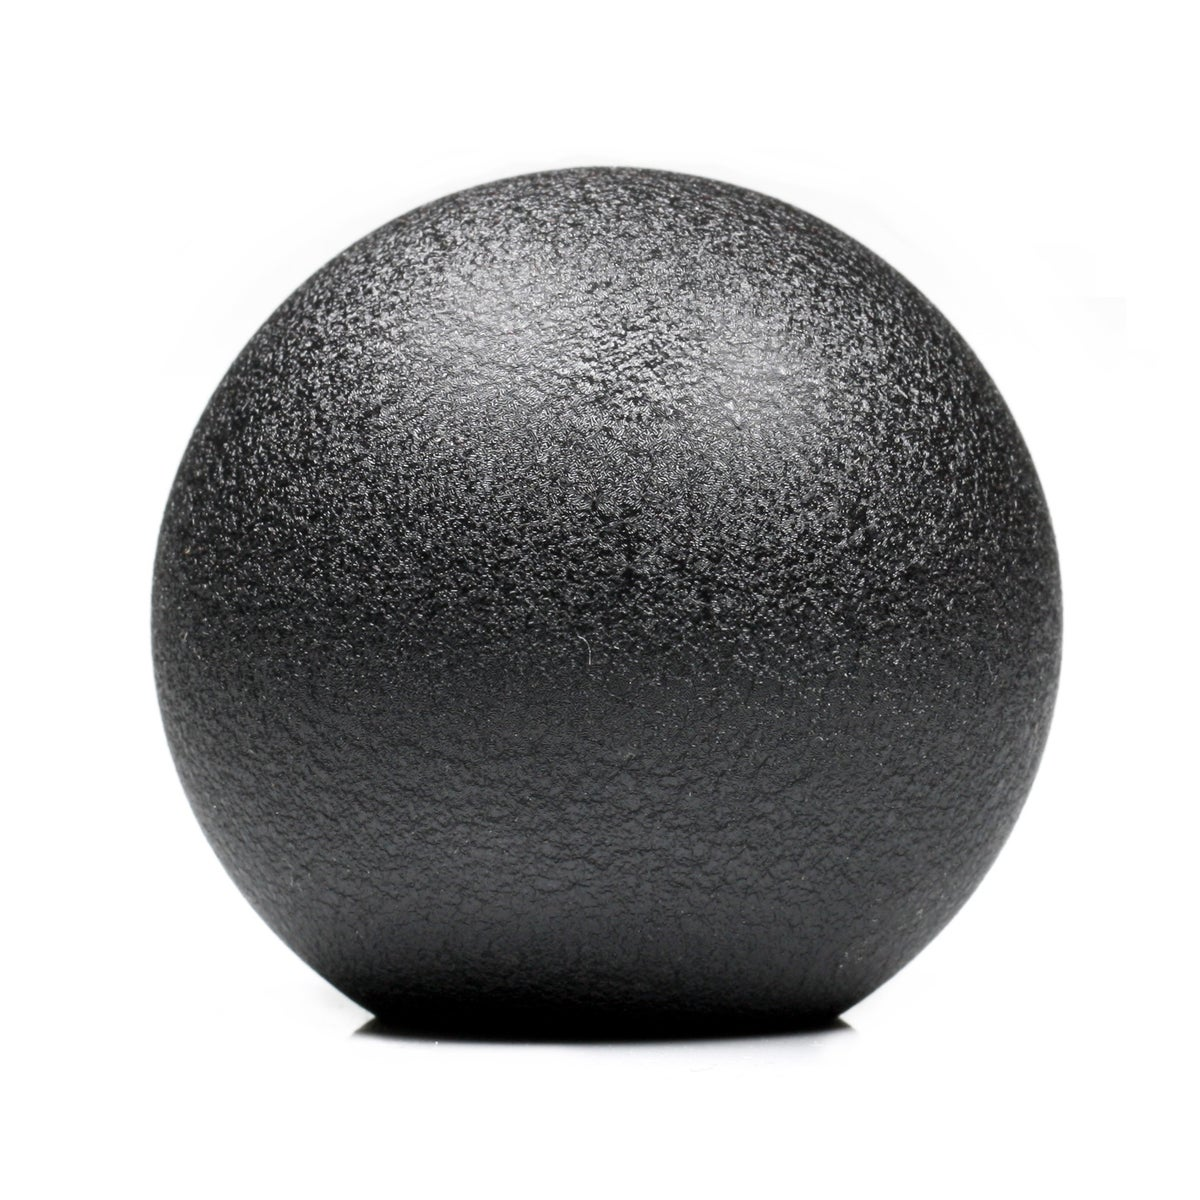 Image of SR [610 Grams] Shift Knob